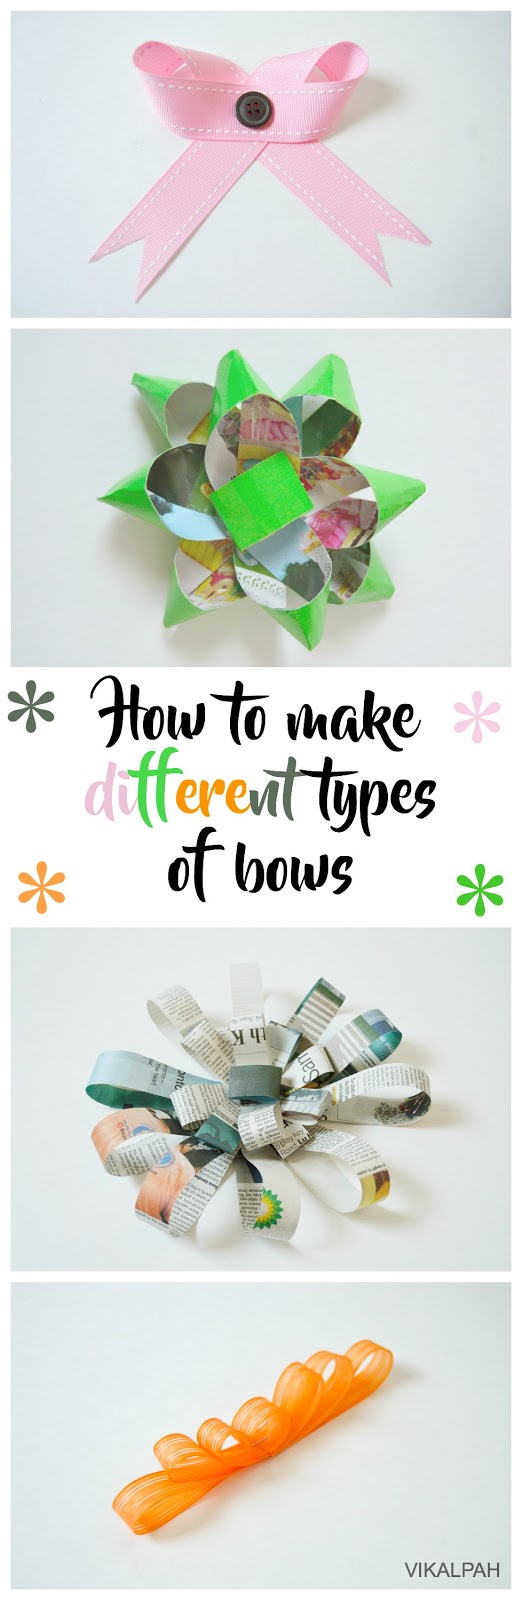 gift bows using different materials like newspaper, duct tape, ribbons, etc